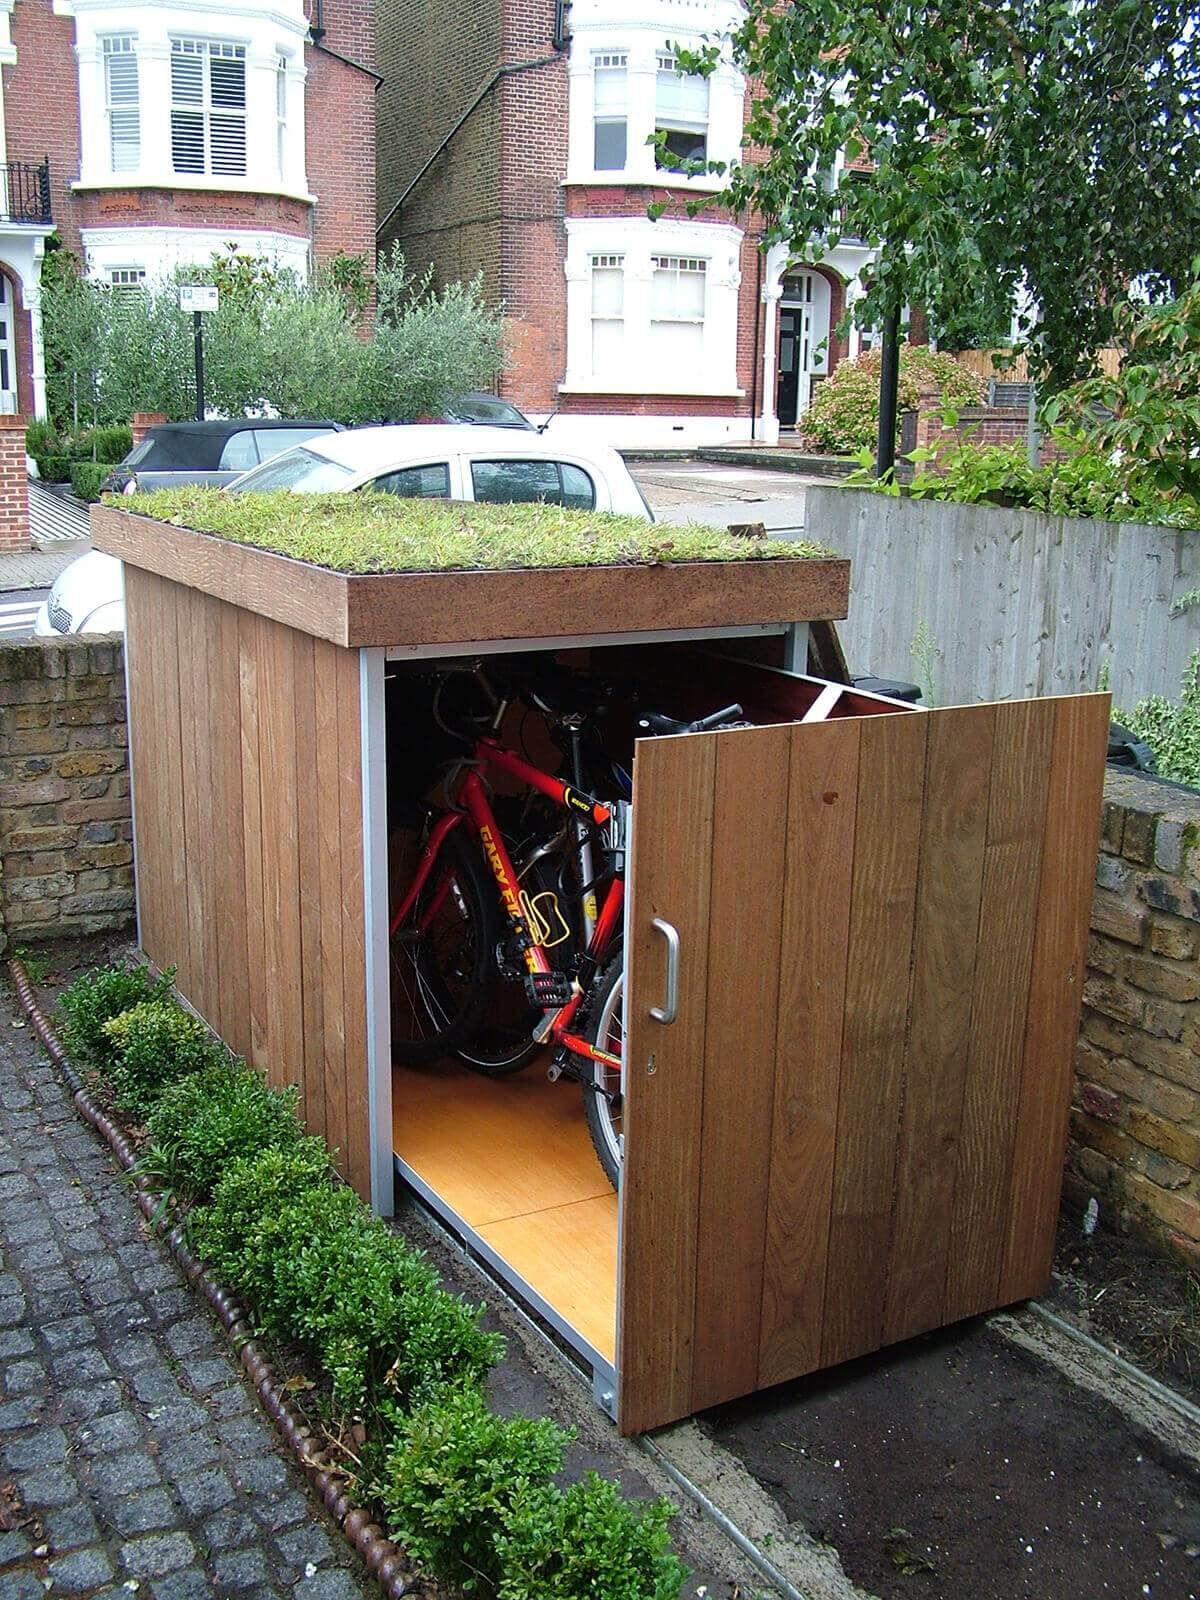 58 cool storage shed ideas for your garden bike storage on garage organization ideas that will save you space keeping things simple id=24661